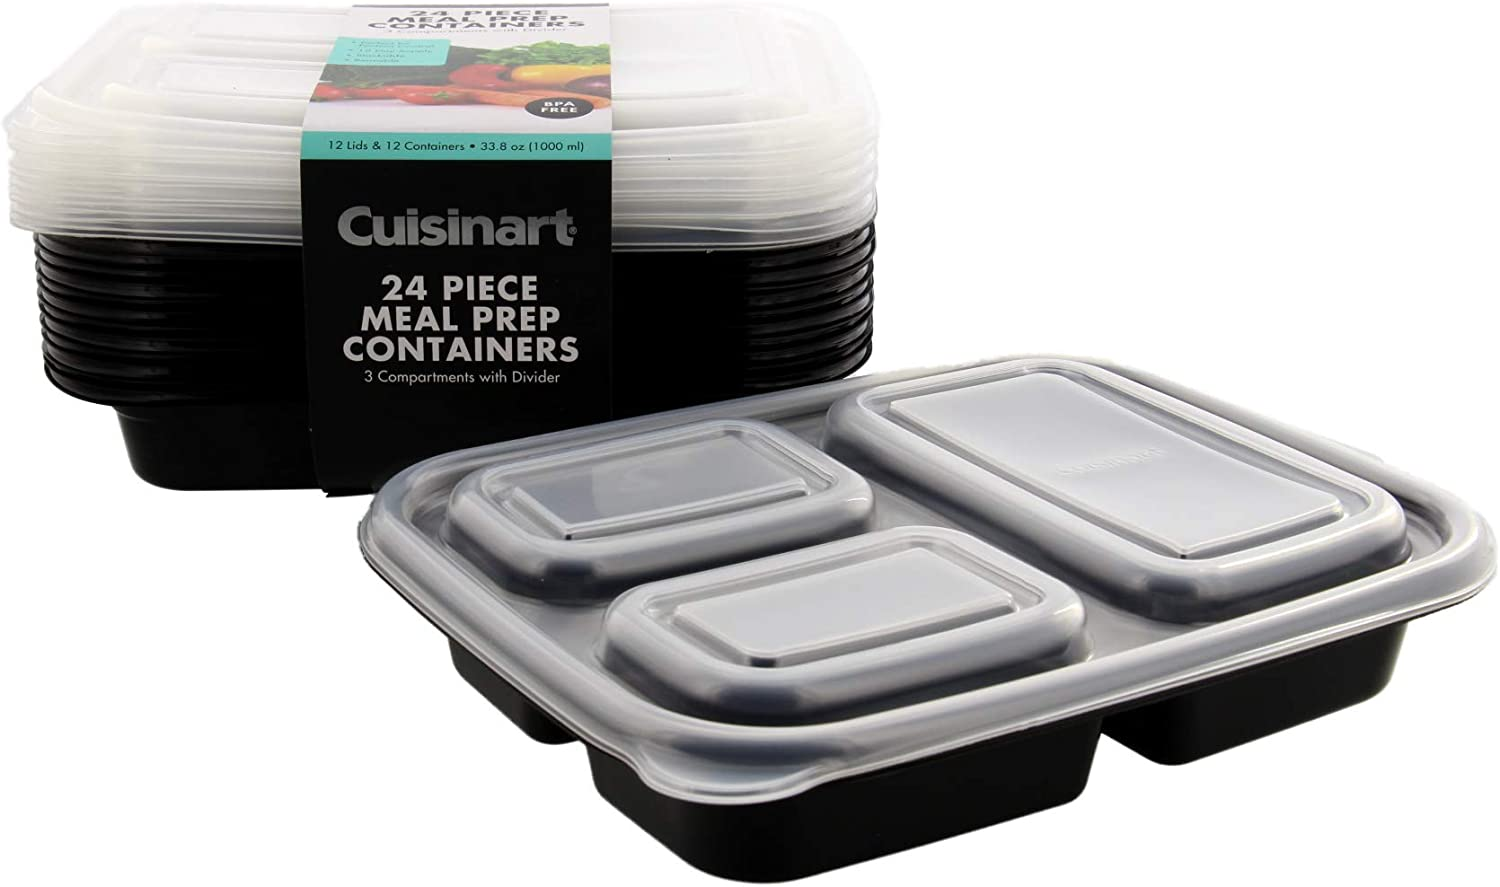 Cuisinart 3 Compartment Meal Prep Containers, 24 Piece, Set of 12 BPA Free Food Storage Containers with Lids-Reusable, Stackable Bento Box Containers-Microwave, Dishwasher, Freezer Safe-Black, 33.8oz